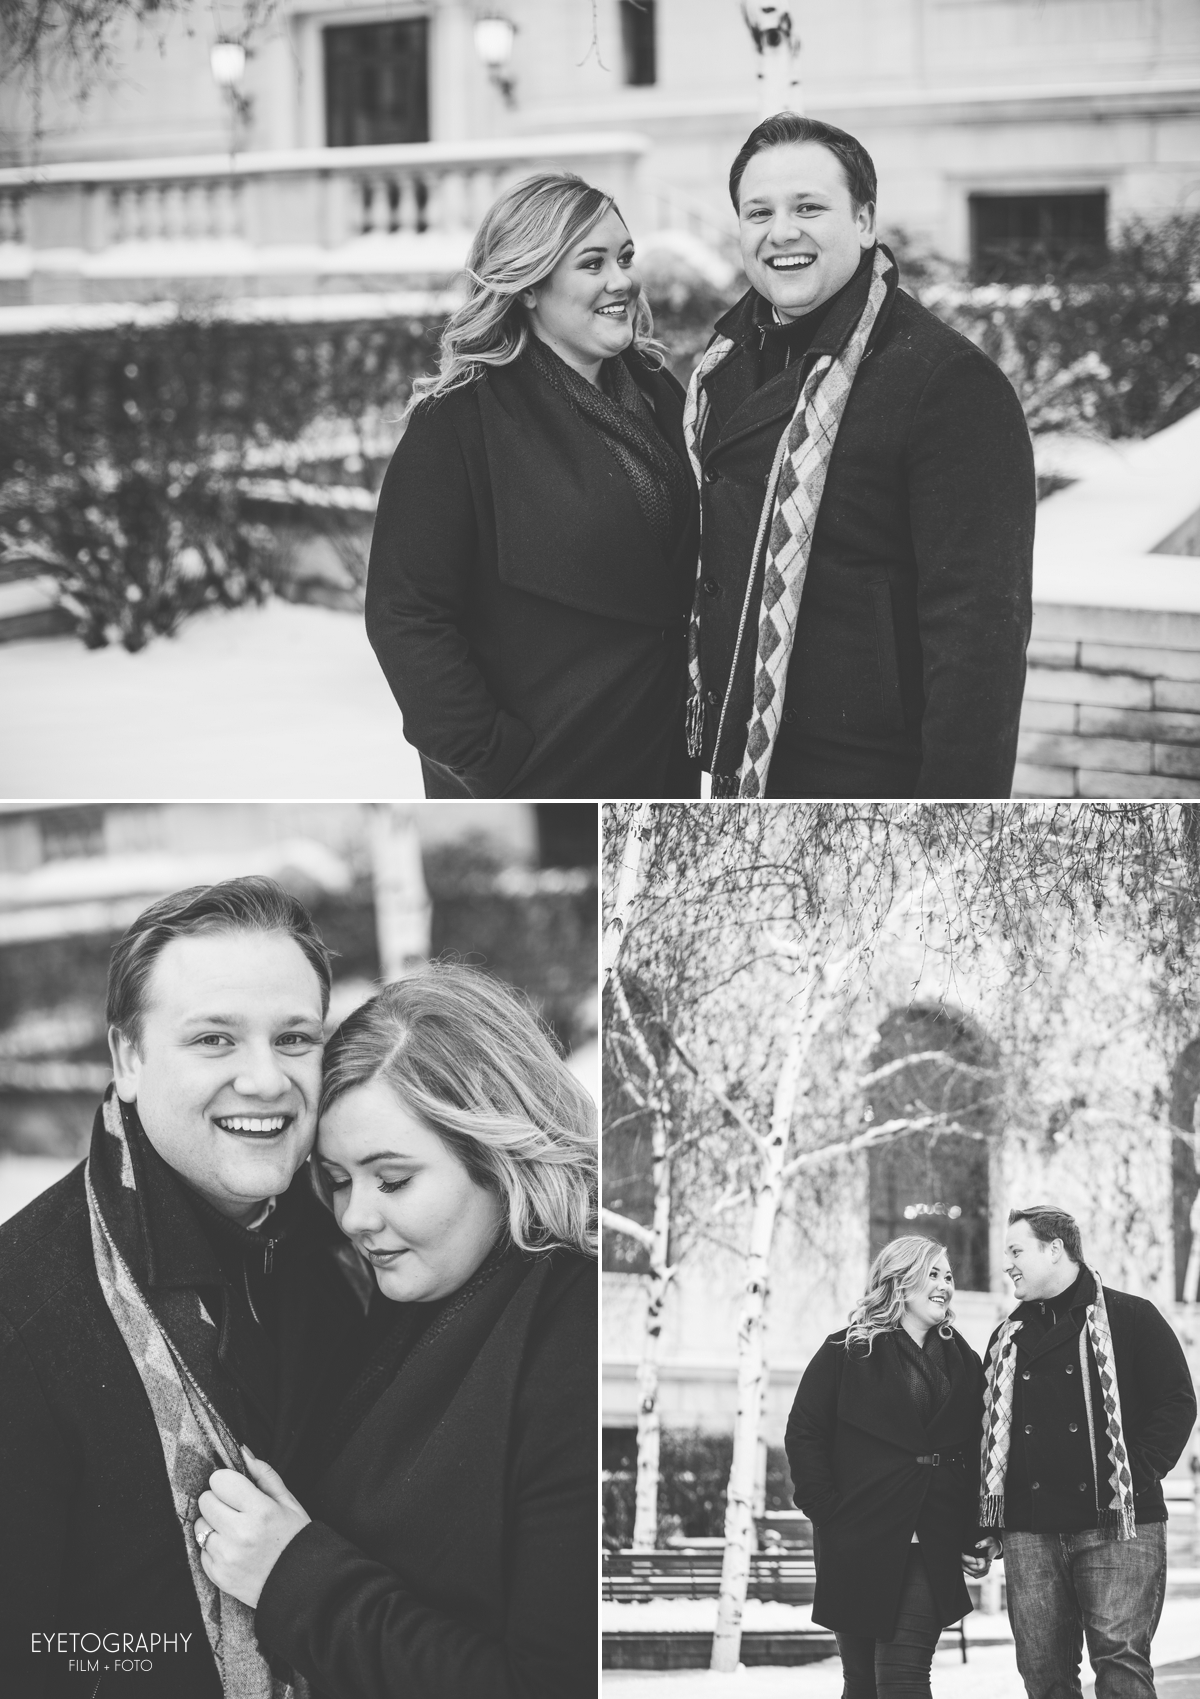 Eyetography Film + Foto - St. Paul Engagement Photography 3